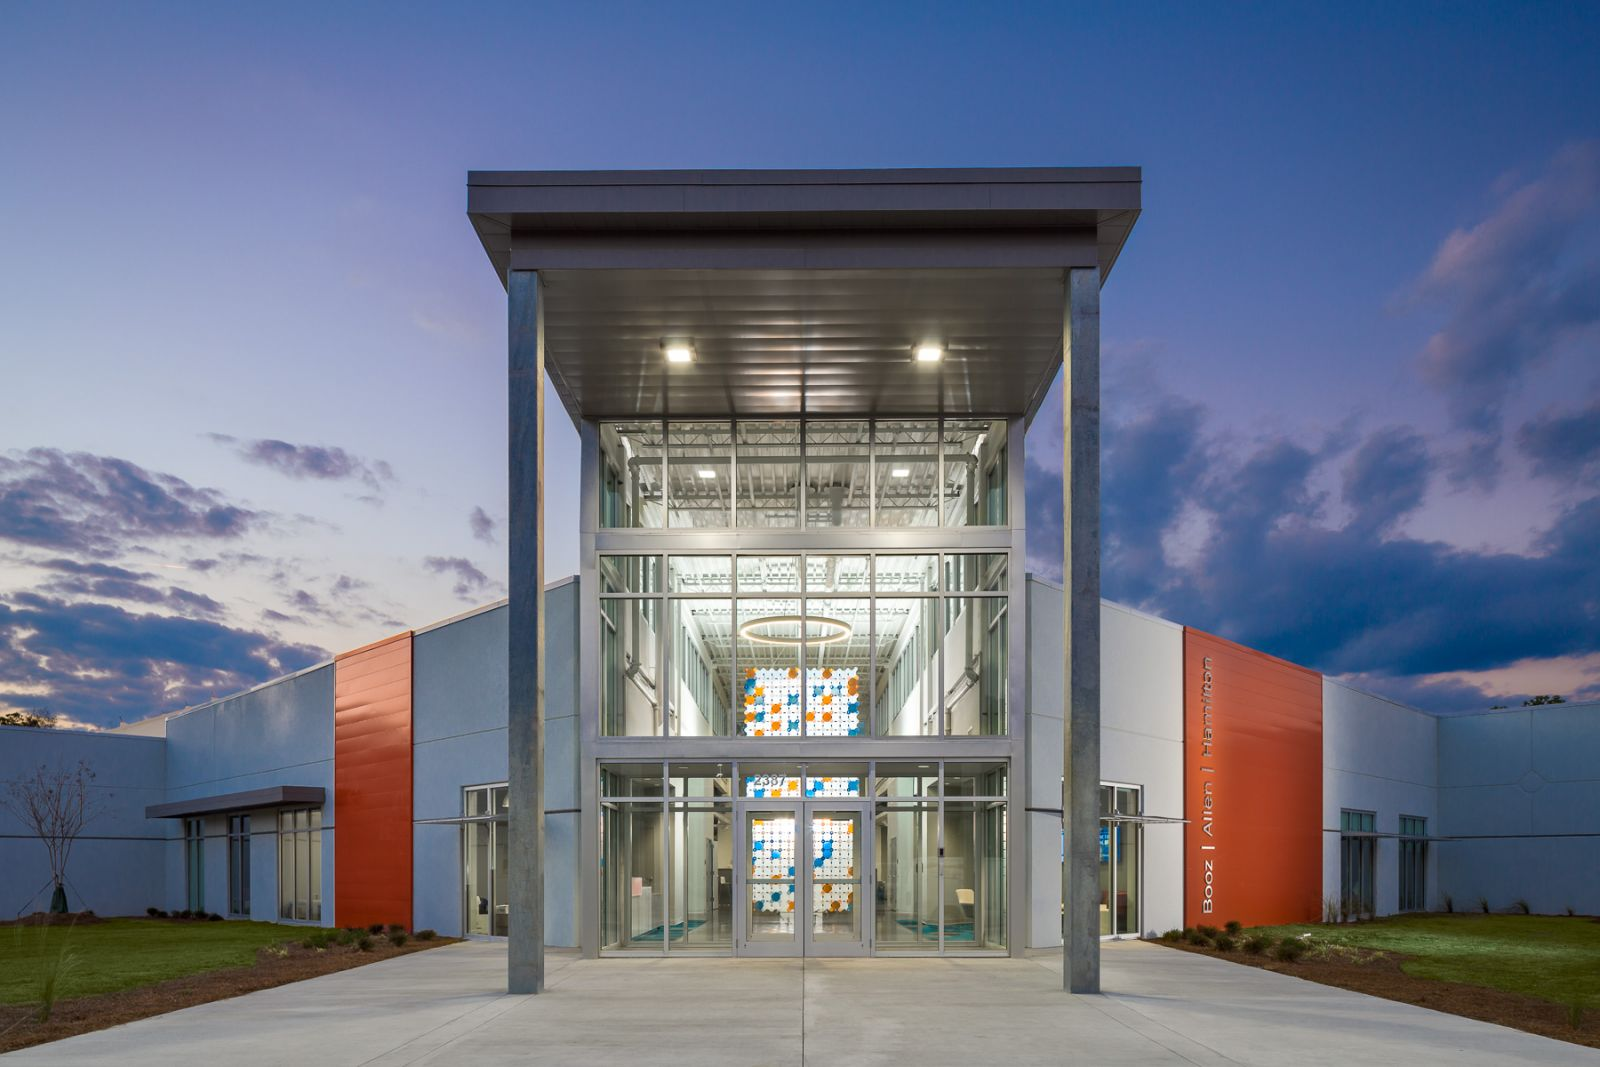 Frampton Construction Co., Agracel Inc. and McMillan Pazdan Smith collaborated on the Booz Allen Hamilton expansion in Berkeley County. (Photo/provided)